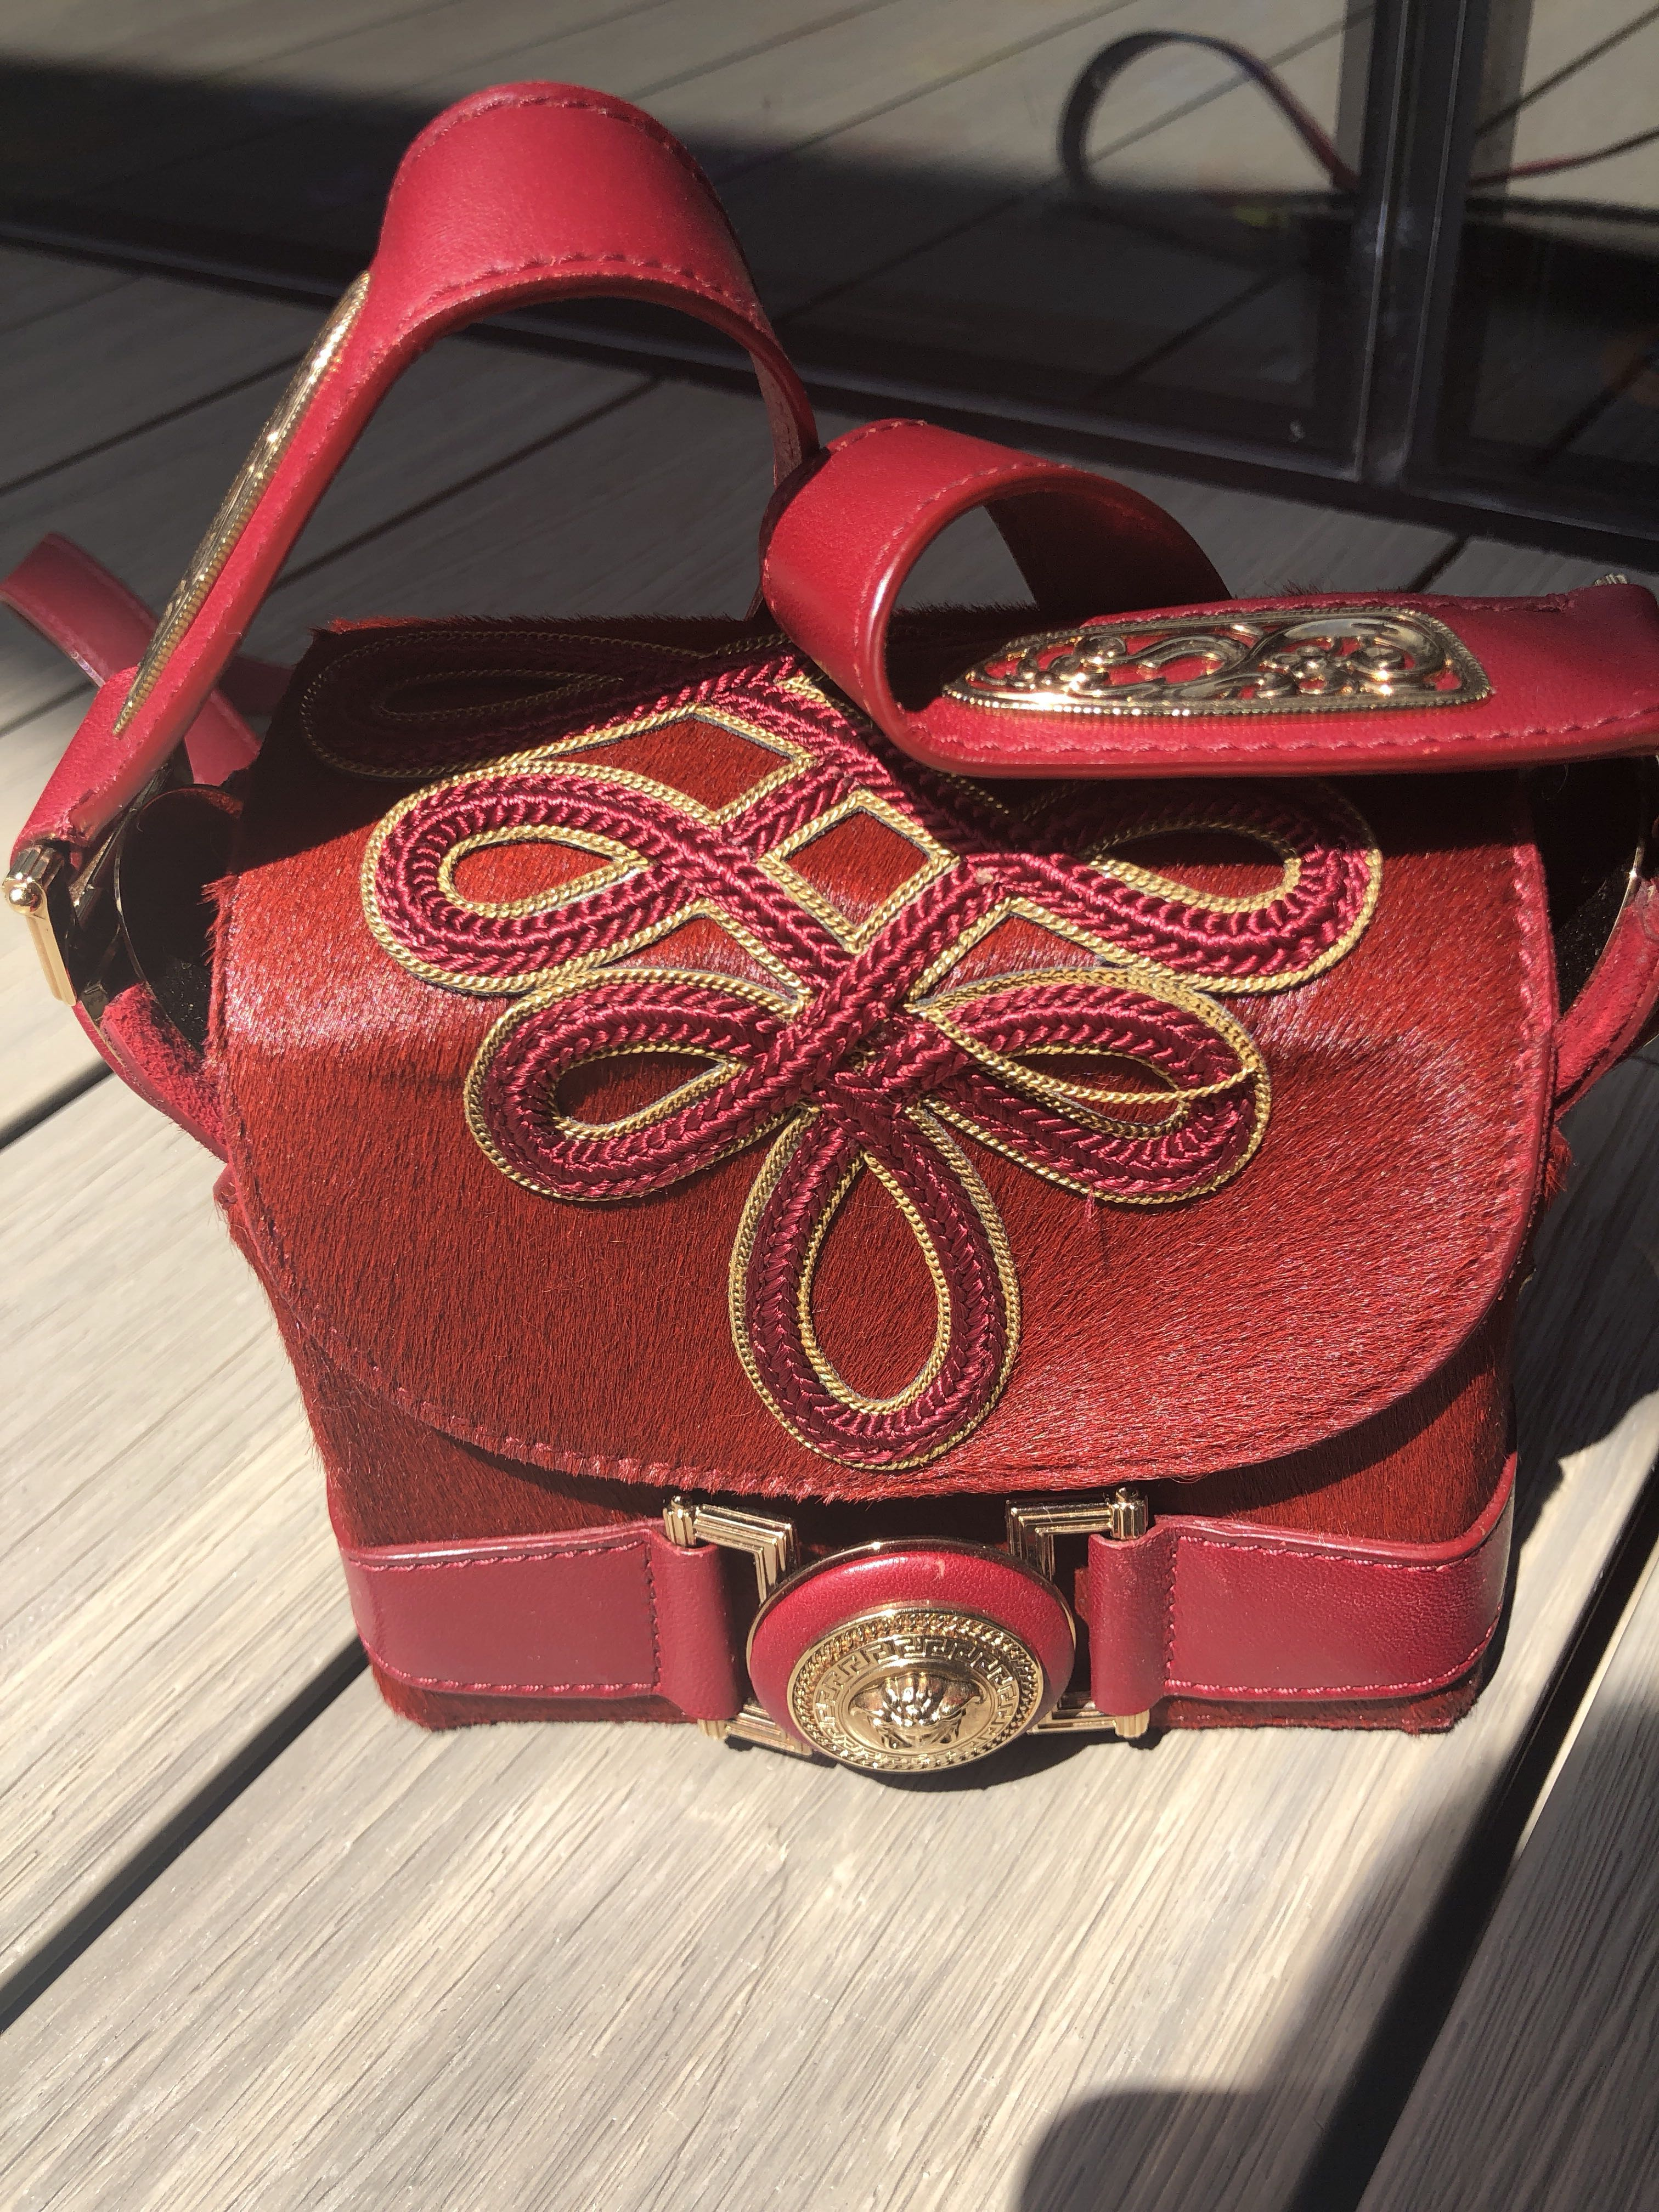 Versace Sling Bag (Authentic), Luxury, Bags   Wallets, Sling Bags on  Carousell c82a867d38